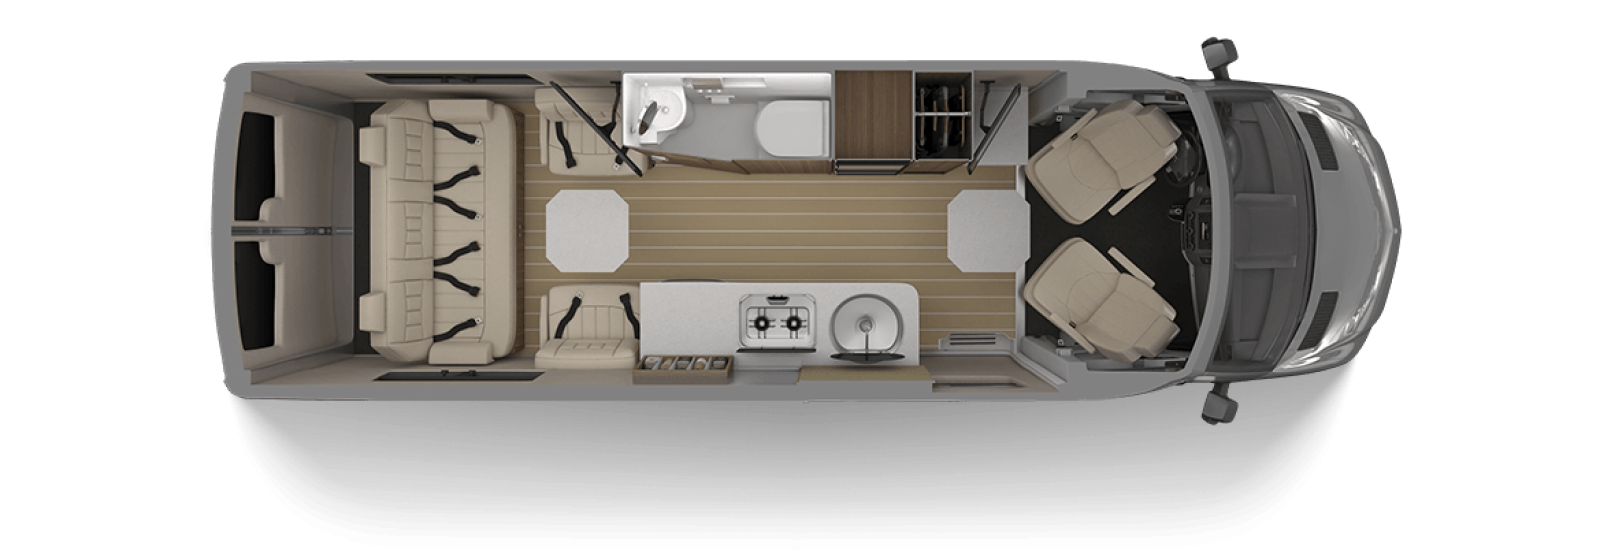 InterstateTommy-Floorplan-GrandTour-wShadow-NEW